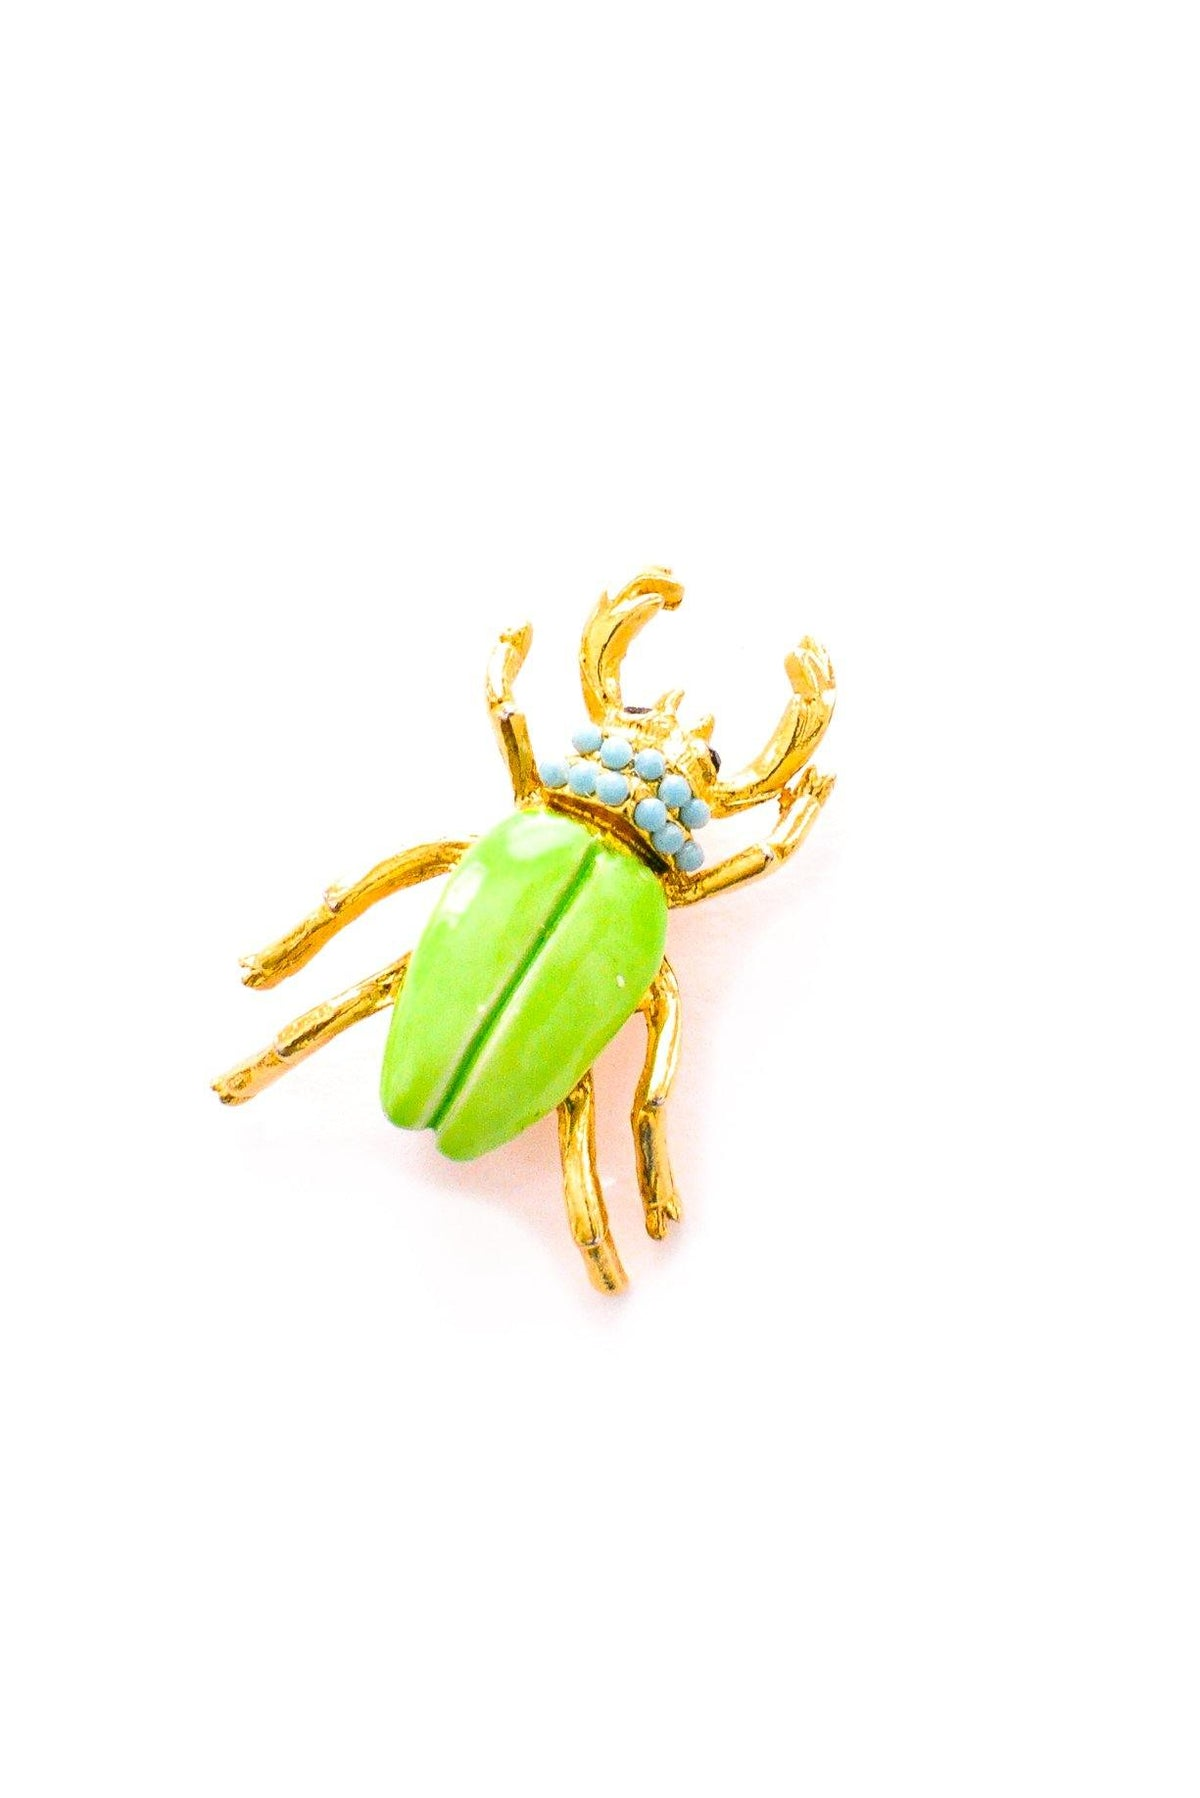 Mini vintage beetle brooch from Sweet & Spark.